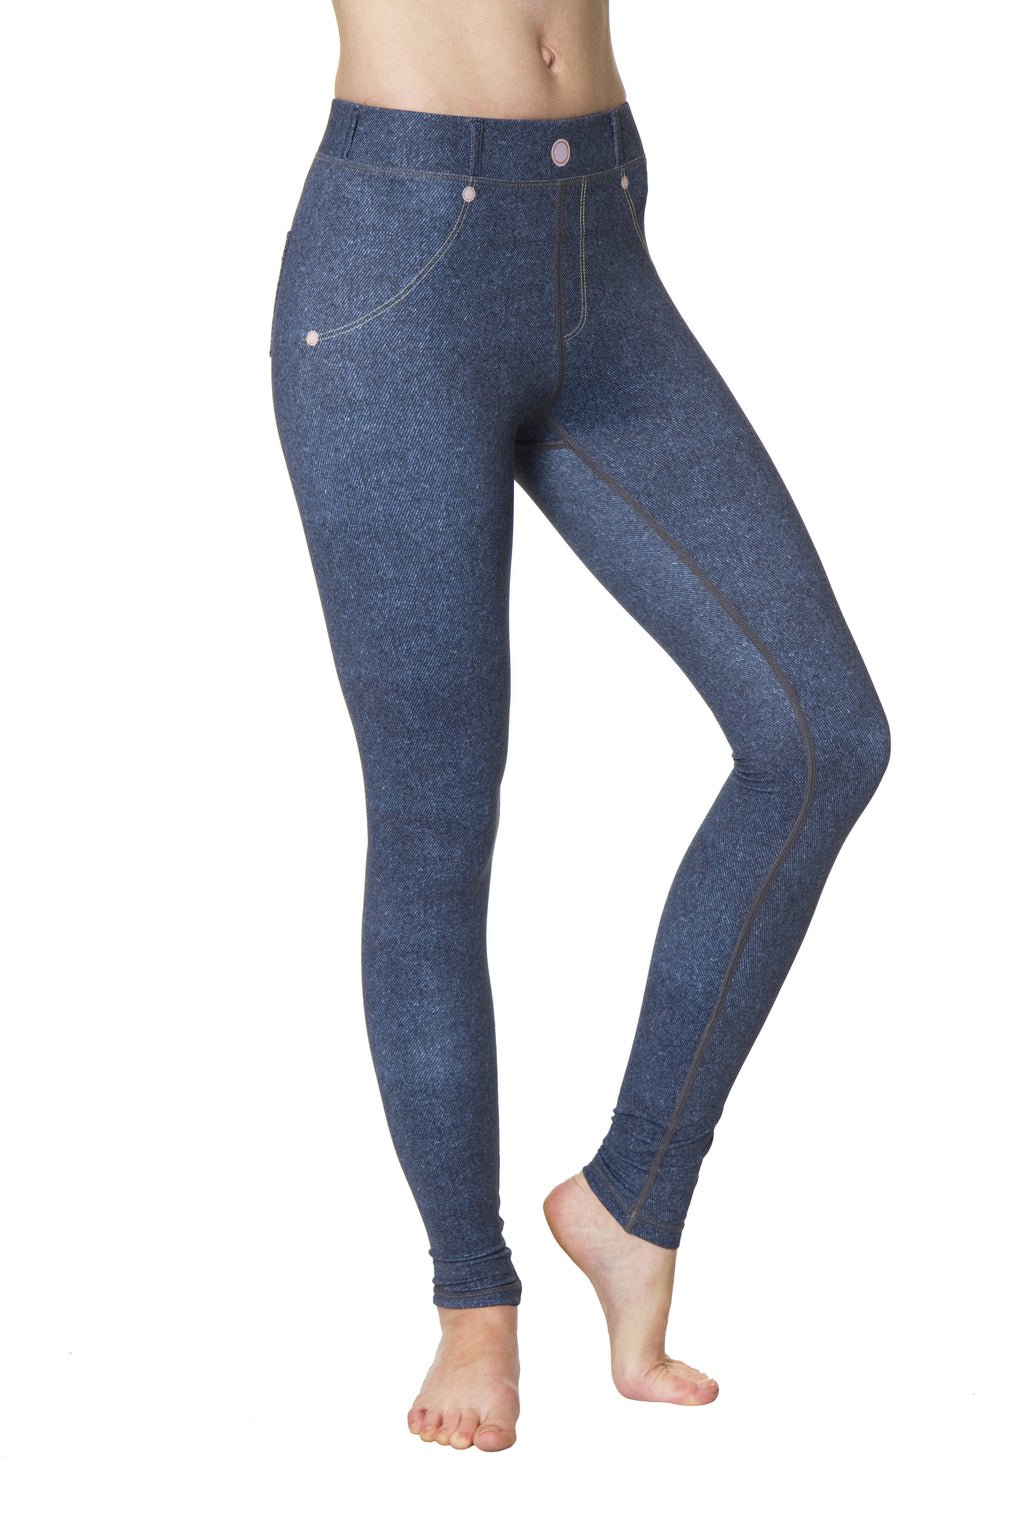 Denim Flexi Yoga Leggings